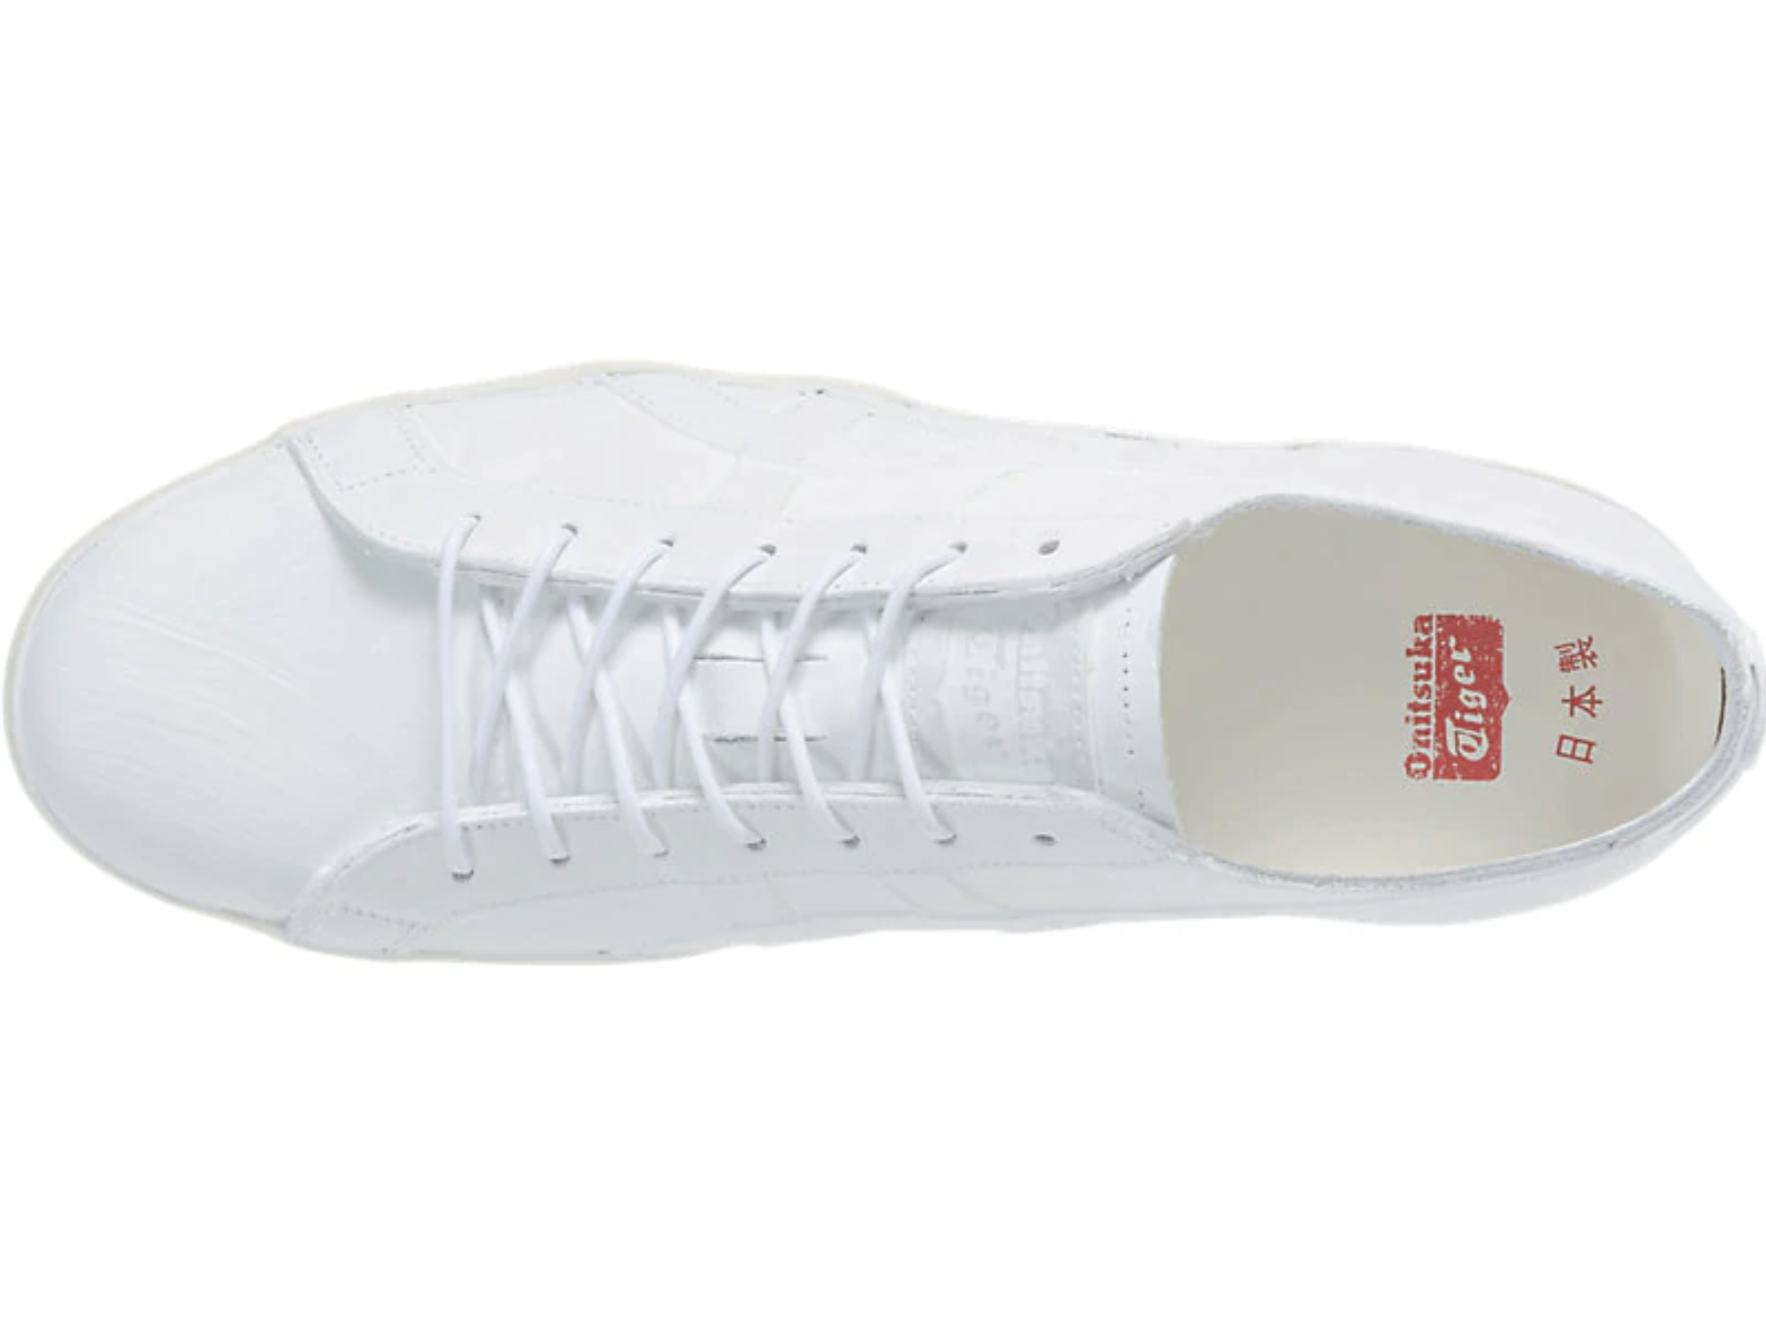 Onitsuka Tiger FABRE DELUXE LO CL